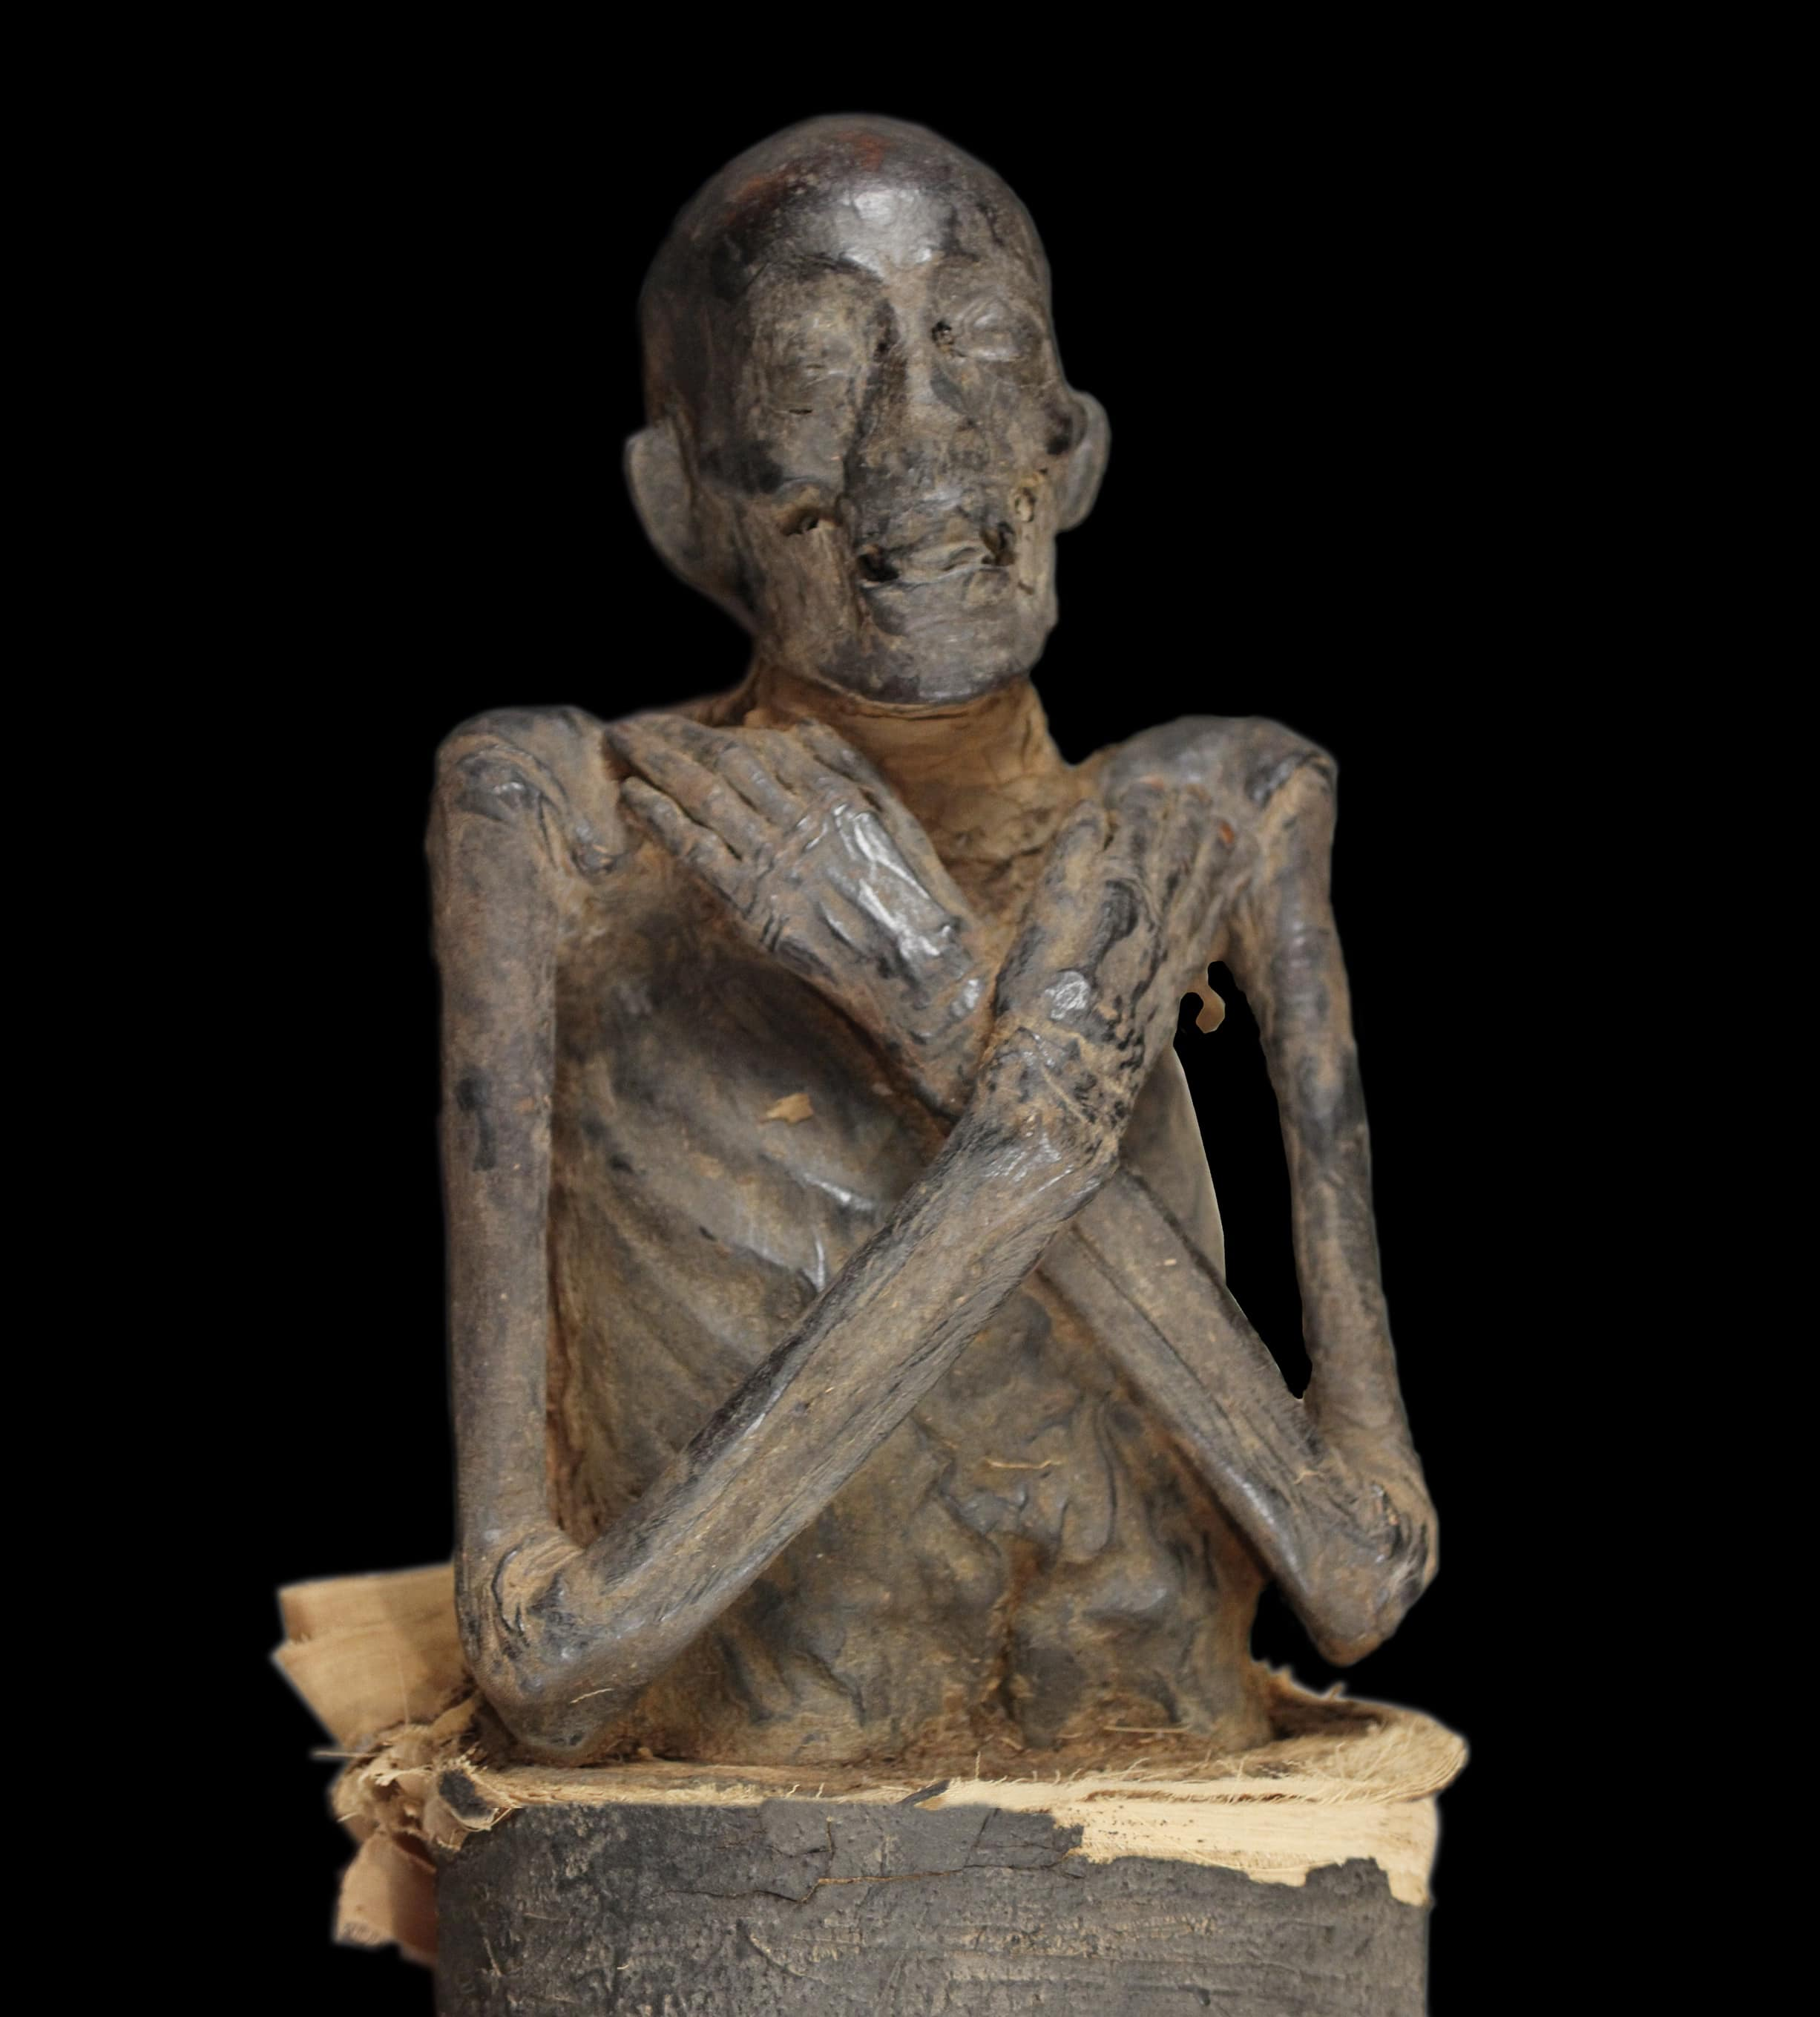 Revealed Secrets Of 3 000 Year Old Egyptian Mummy